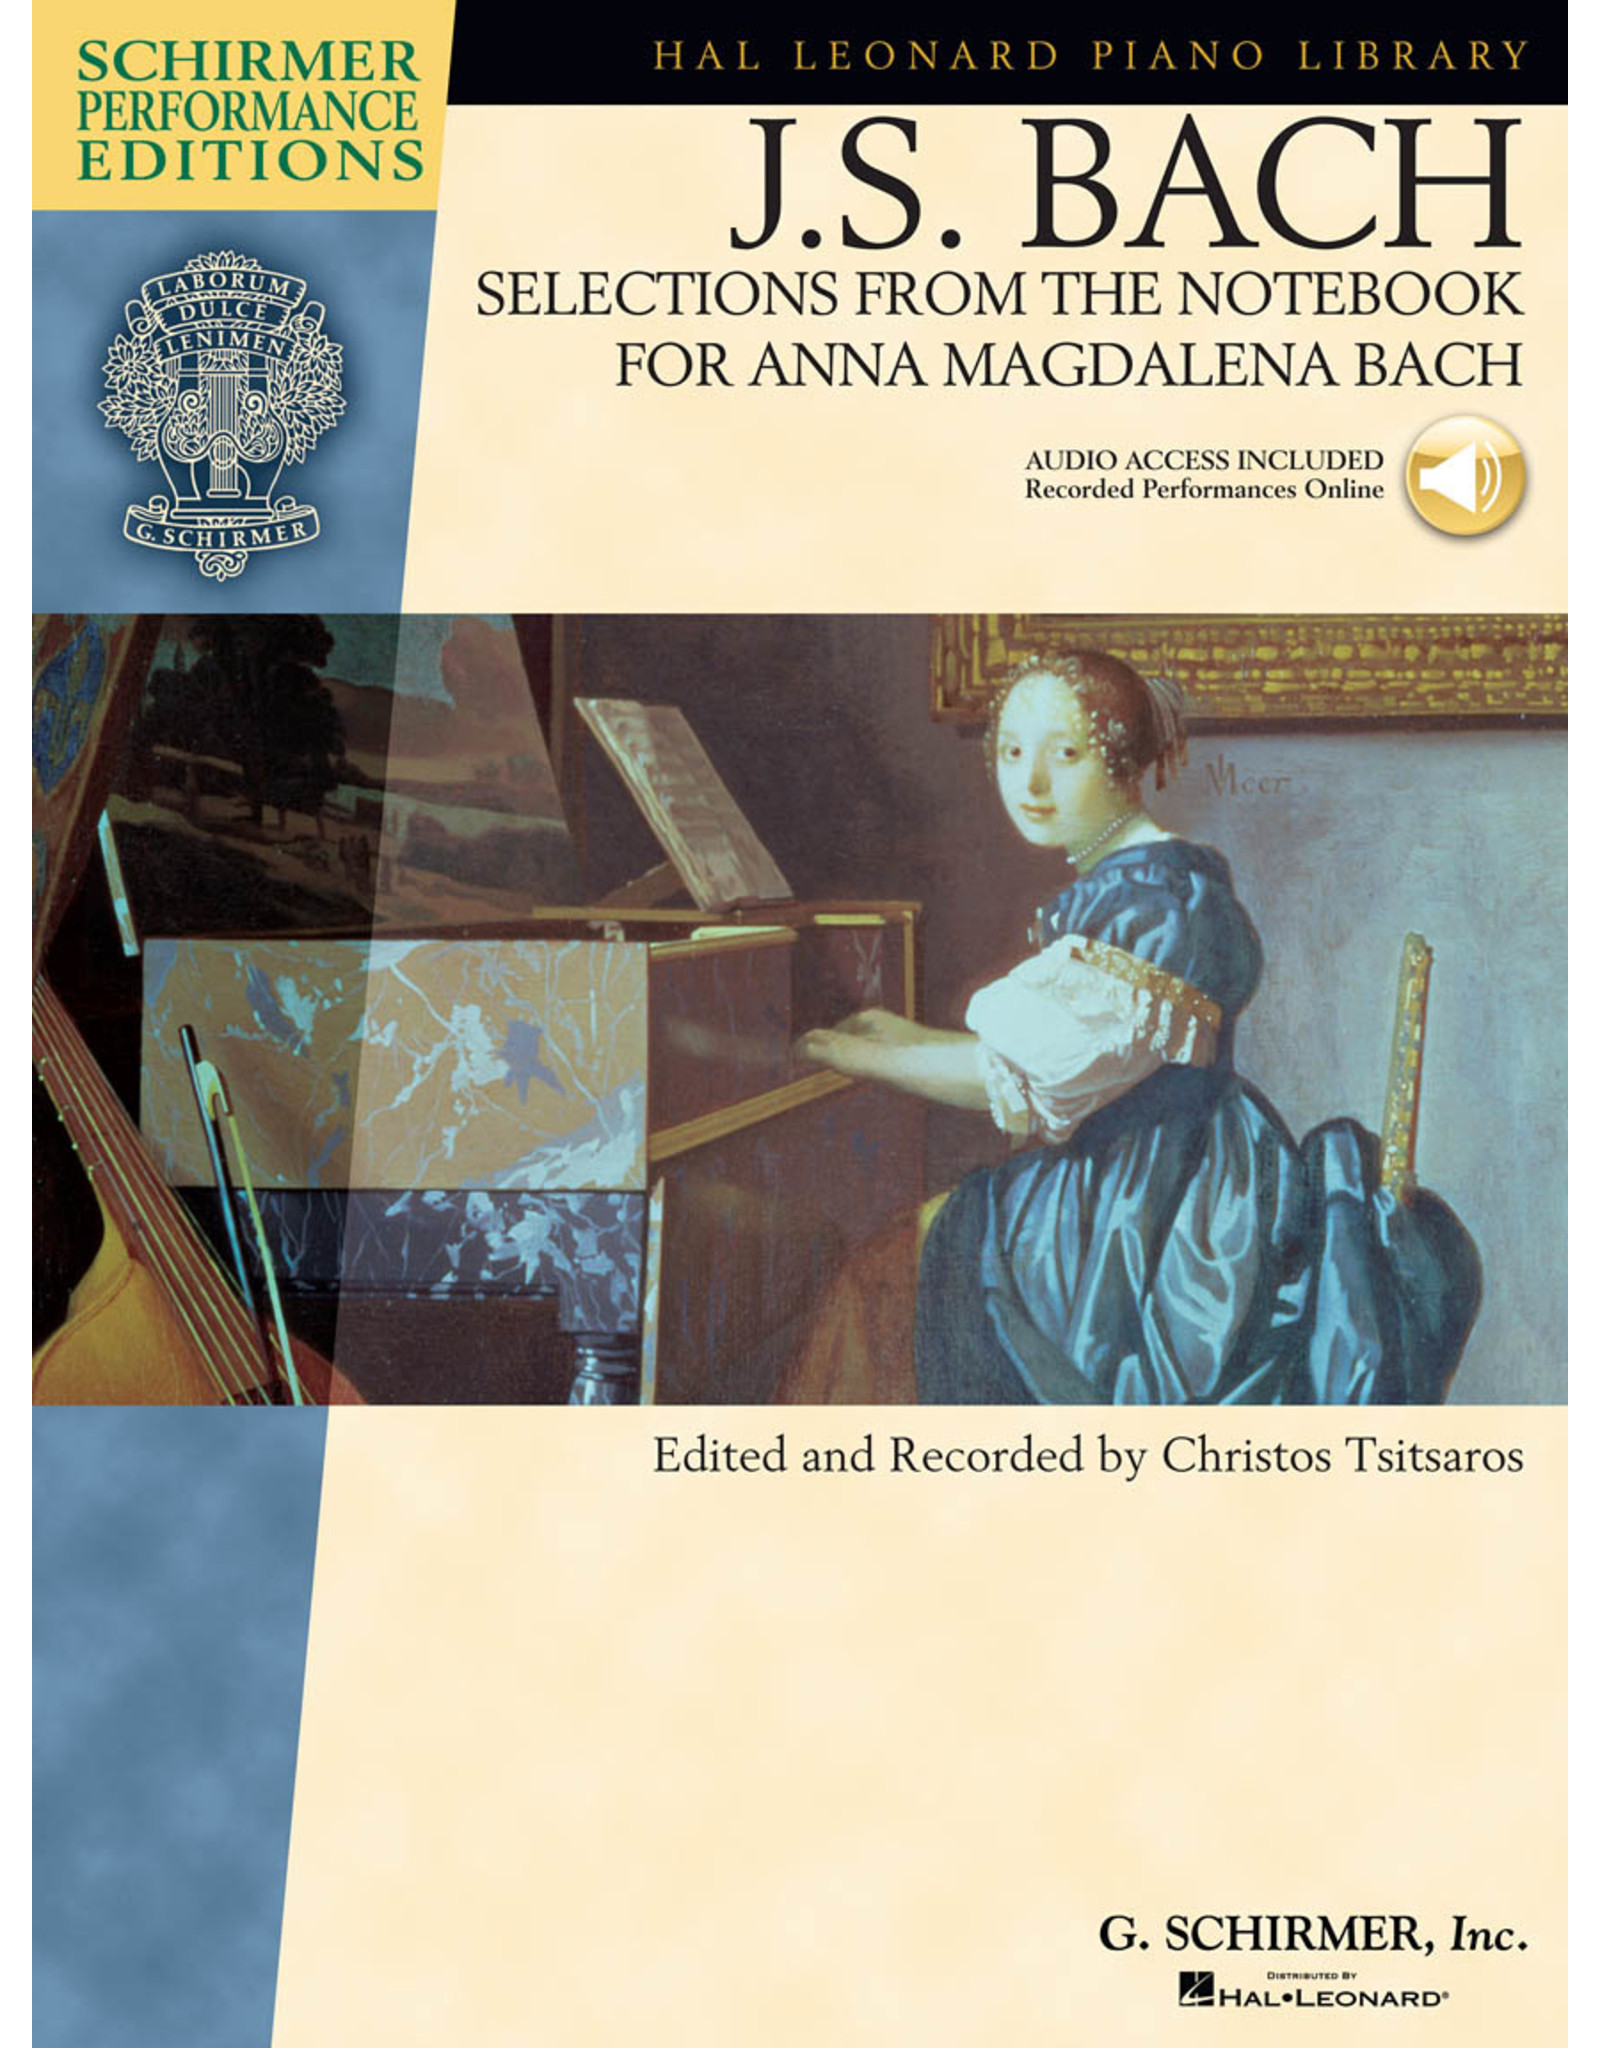 Hal Leonard J.S. Bach - Selections from The Notebook for Anna Magdalena Bach Schirmer Performance Editions edited by Christos Tsitsaros Schirmer Performance Editions